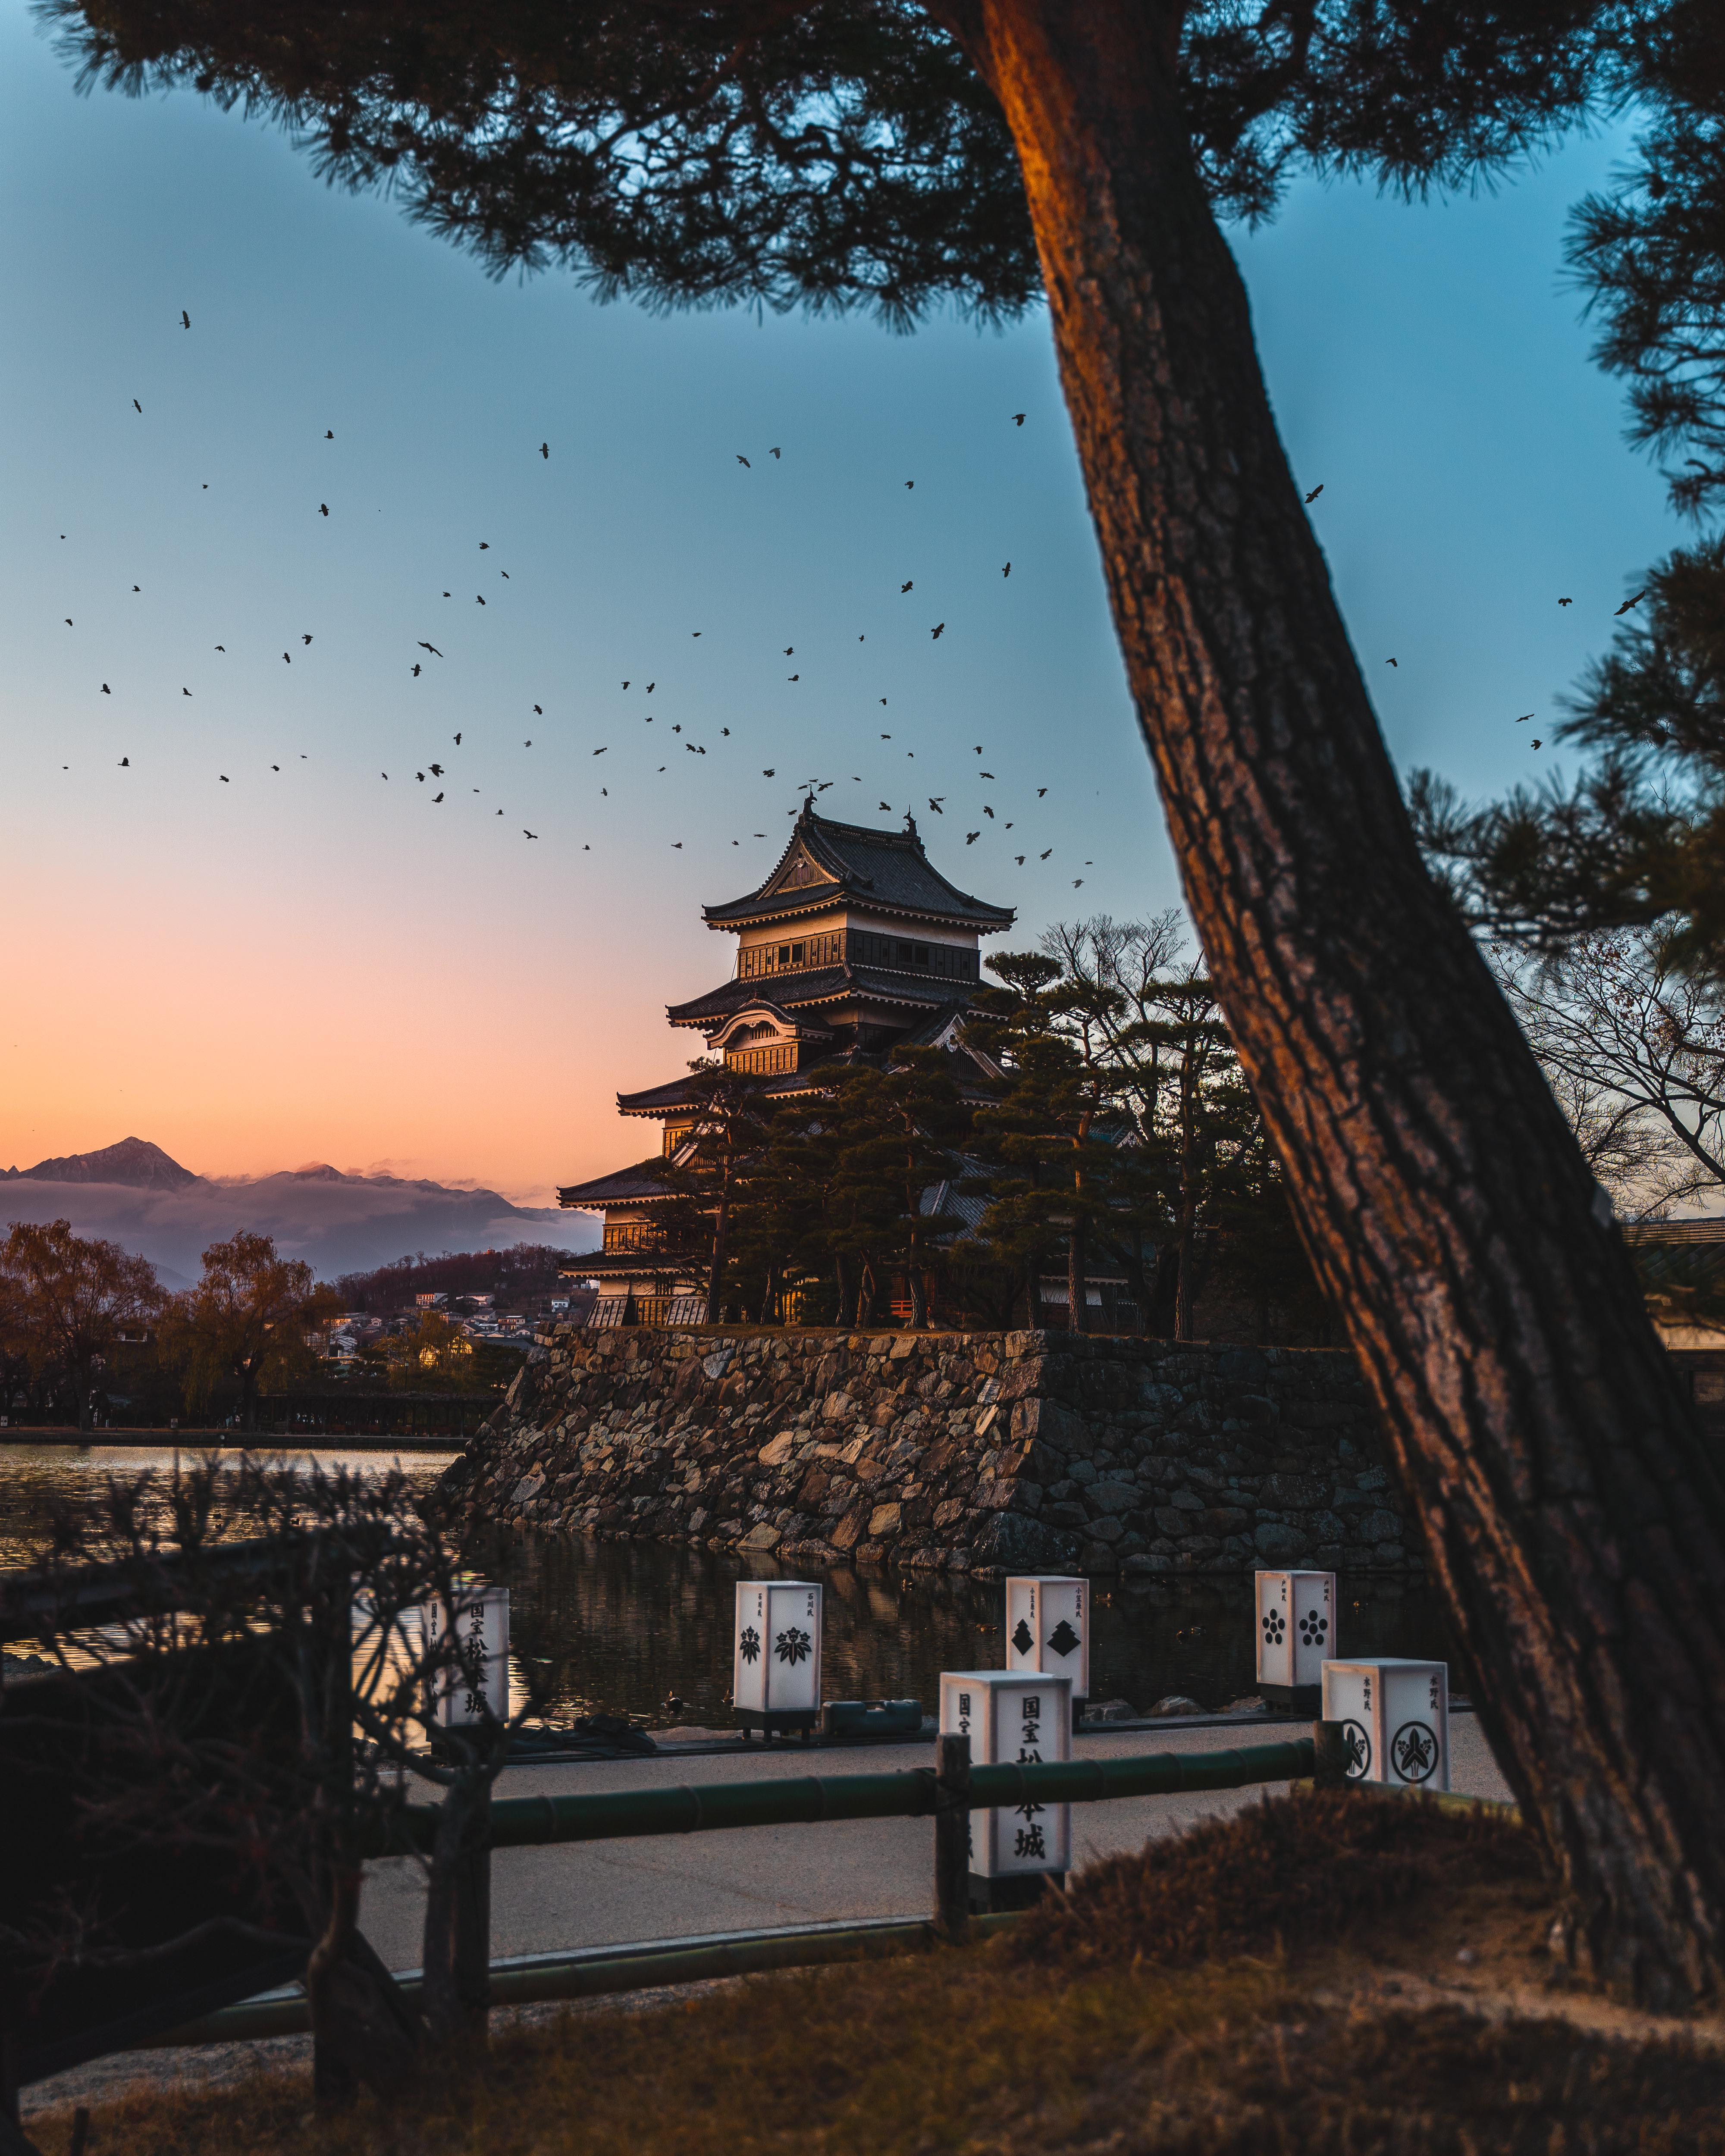 Japanese Castle at Sunset